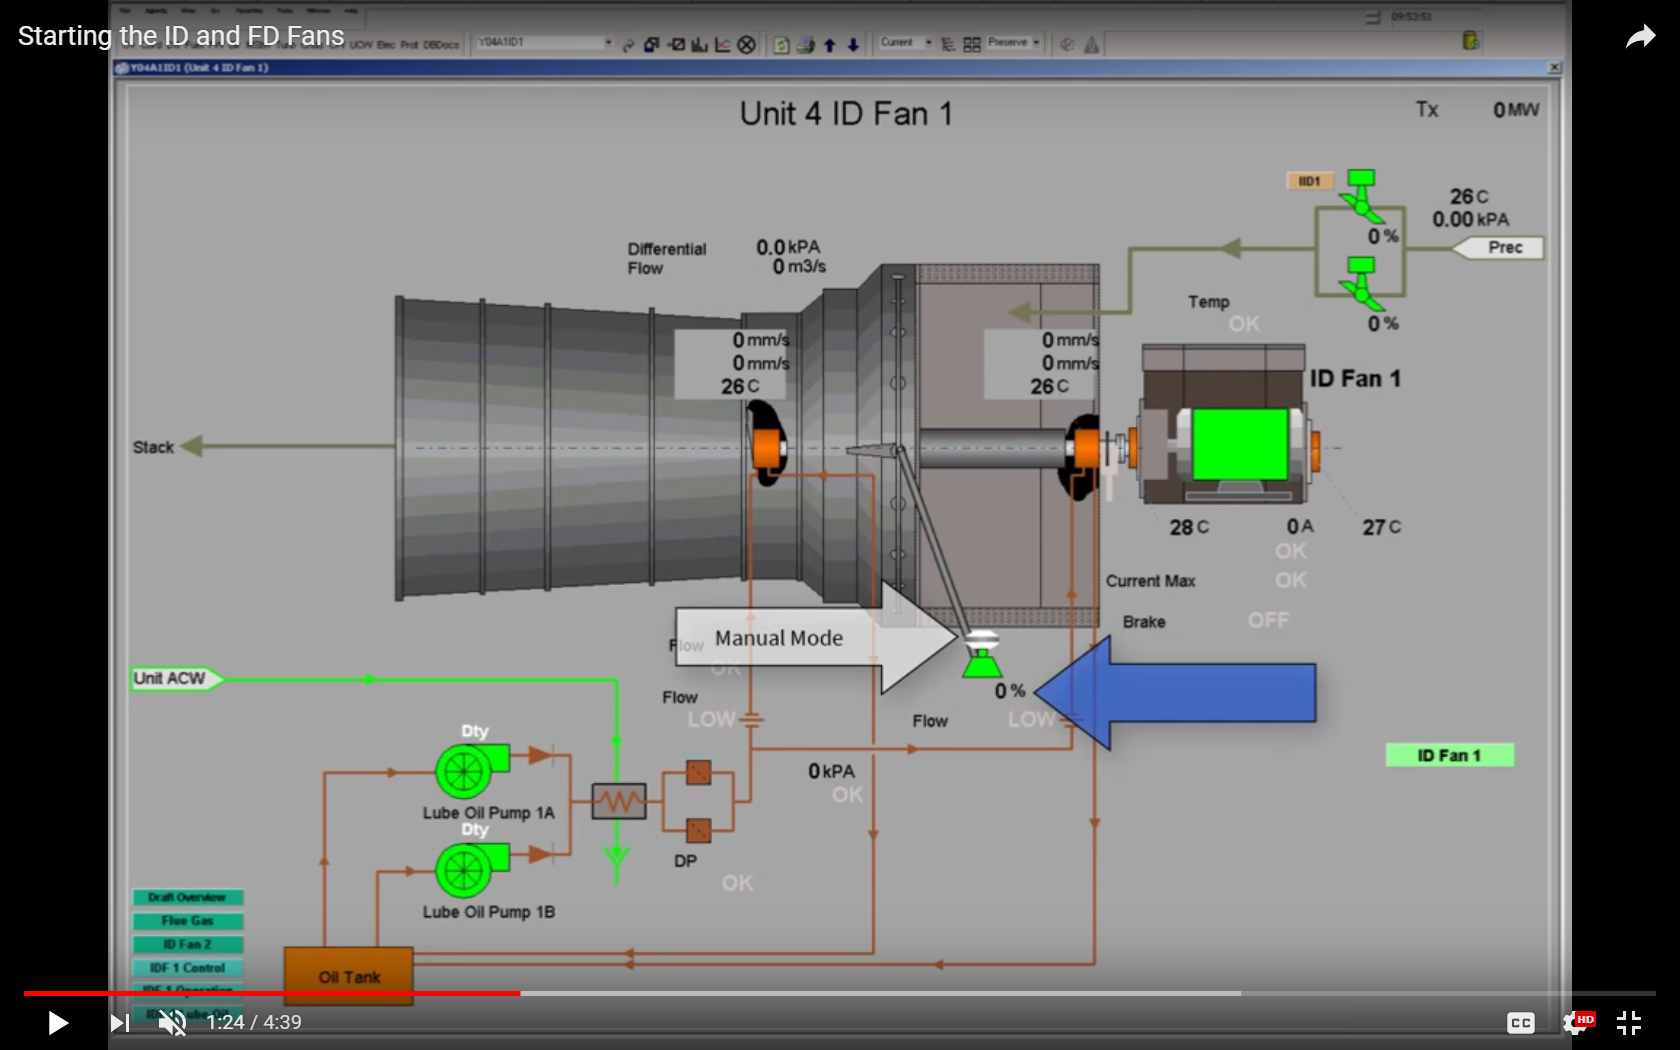 TRAX Tutorial Lessons - TRAX Tutorial Lessons are customized videos demonstrating specific plant operations. The tutorial can cover any plant function: how to put a condensate system in service, how to tie on a generator, etc. The lessons are designed to supplement training materials and allow operators to practice specific tasks with or without a trainer.